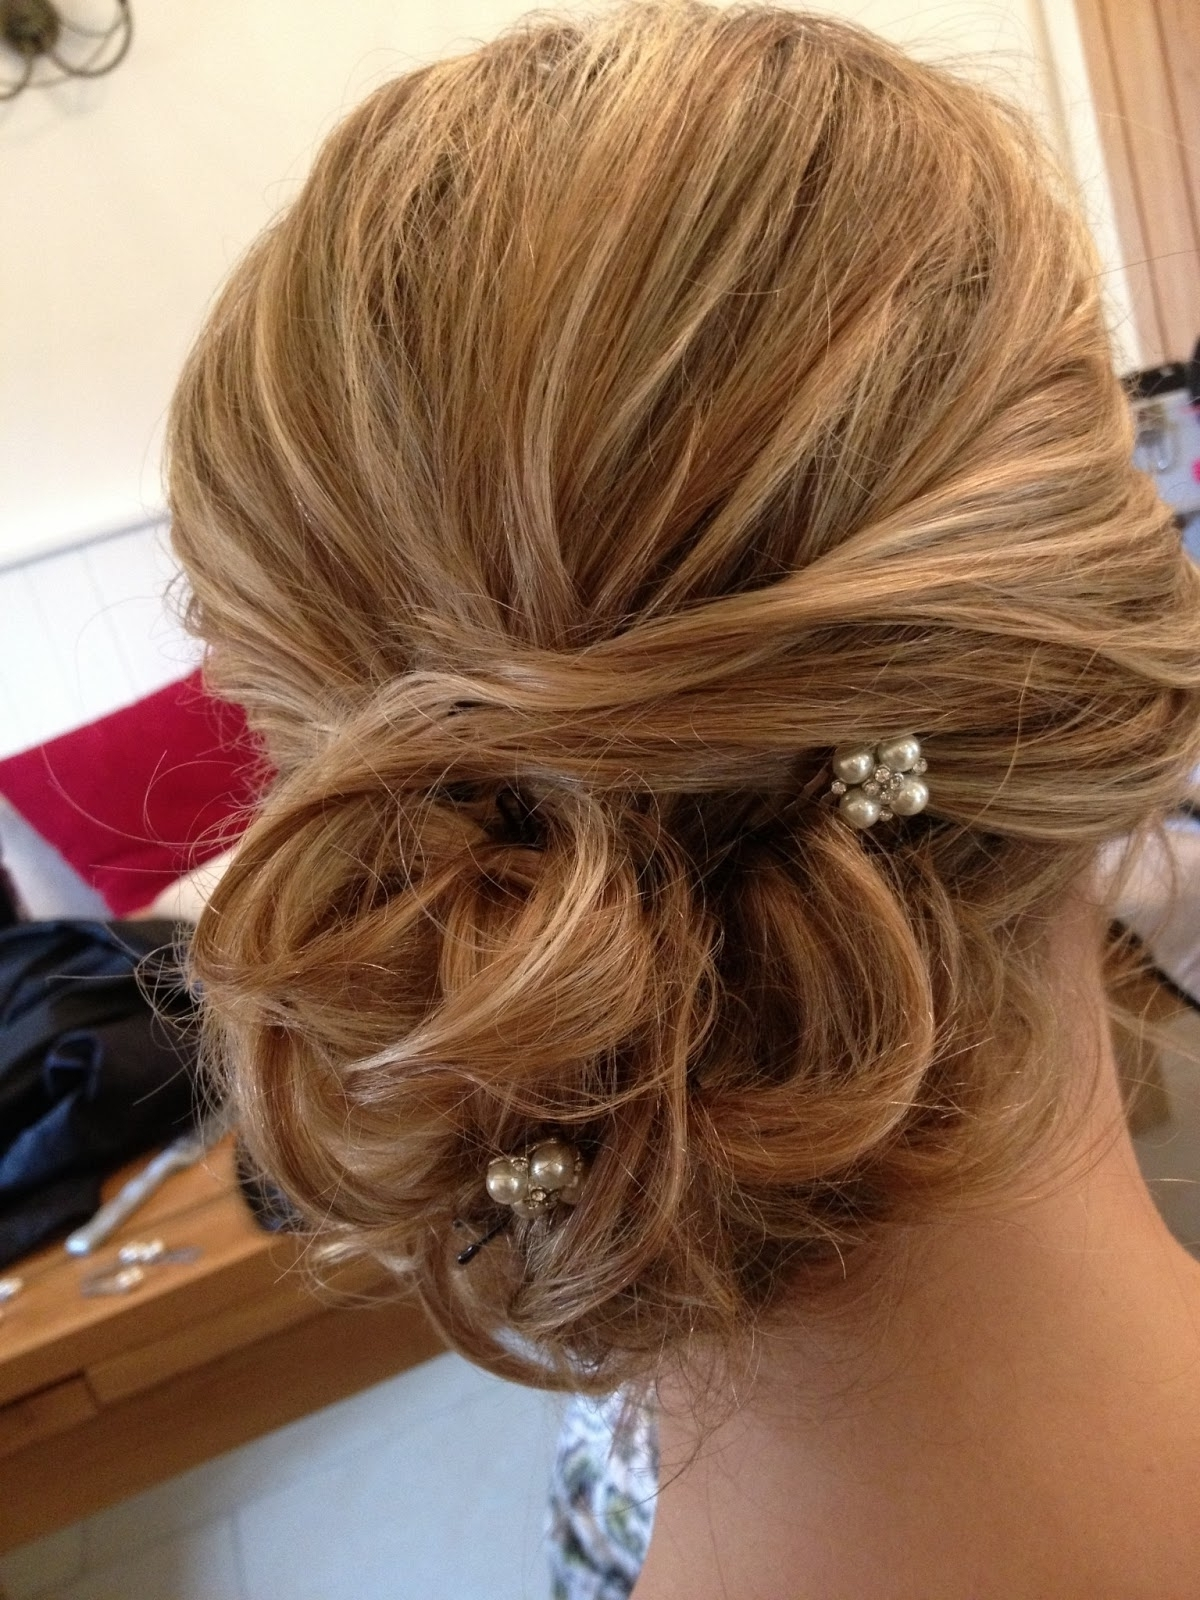 Photo: Loose Side Curly Updo Bridal Hairstyles Curly Hairstyles For With Well Known Curly Side Bun Wedding Hairstyles (View 13 of 15)